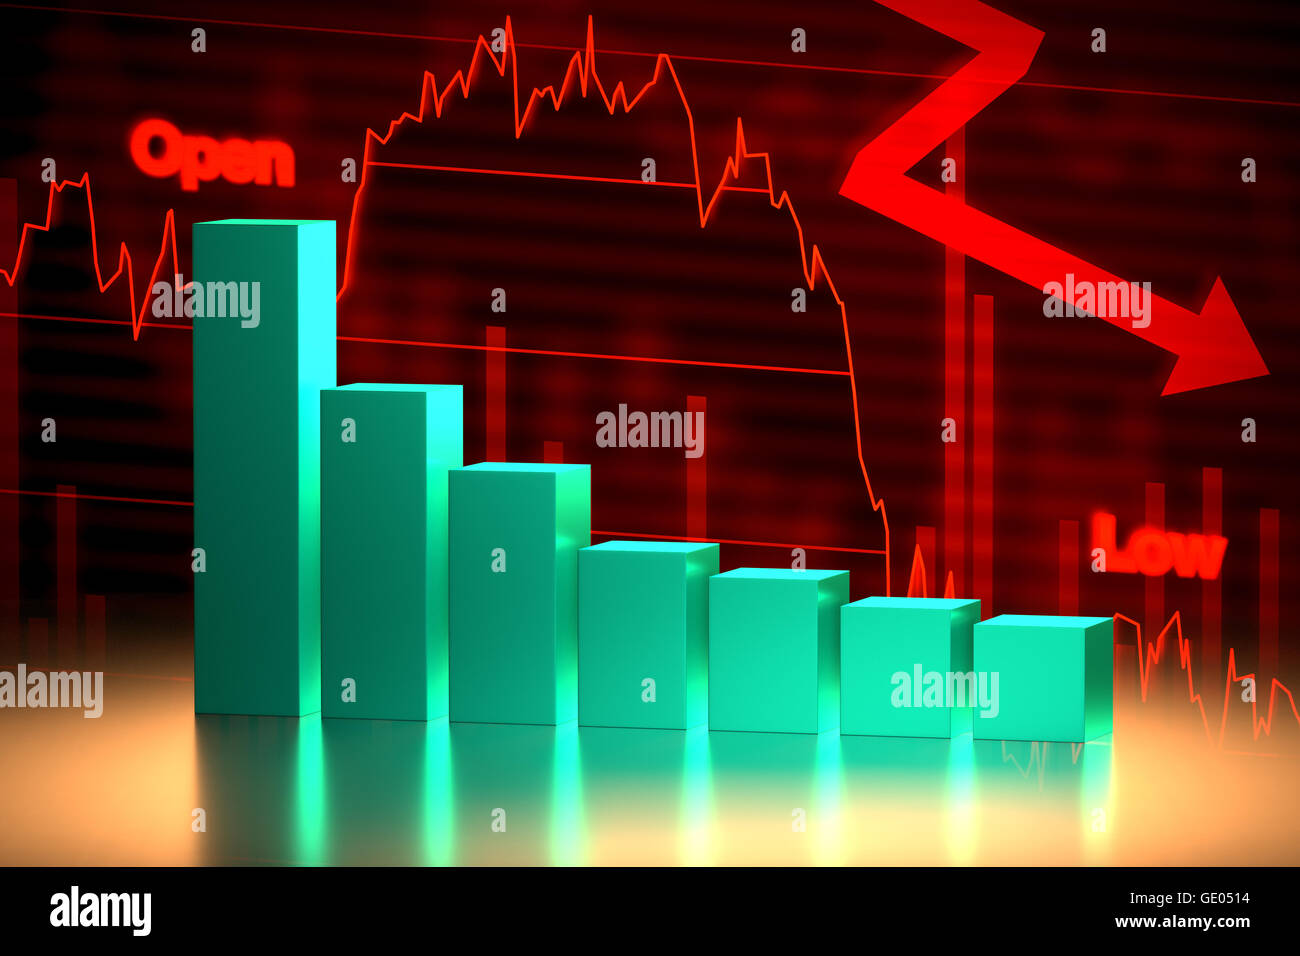 3D rendering of bear stock market chart with downward trend. - Stock Image